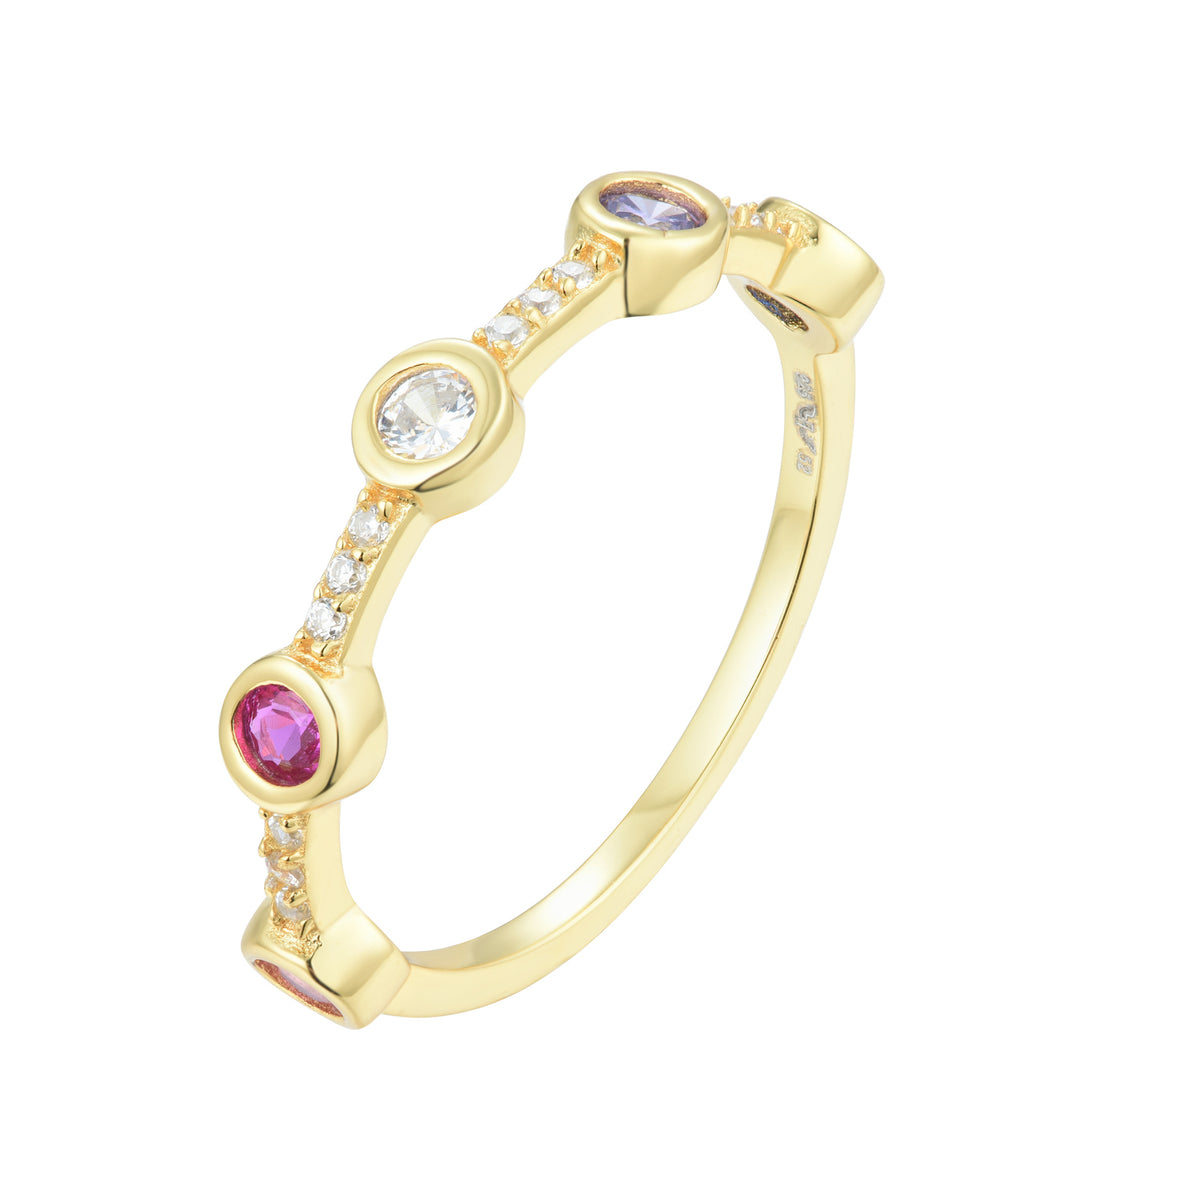 Fortuna | Verona Ring | 952 Silver | Multicolour CZ | 18K Gold Plated